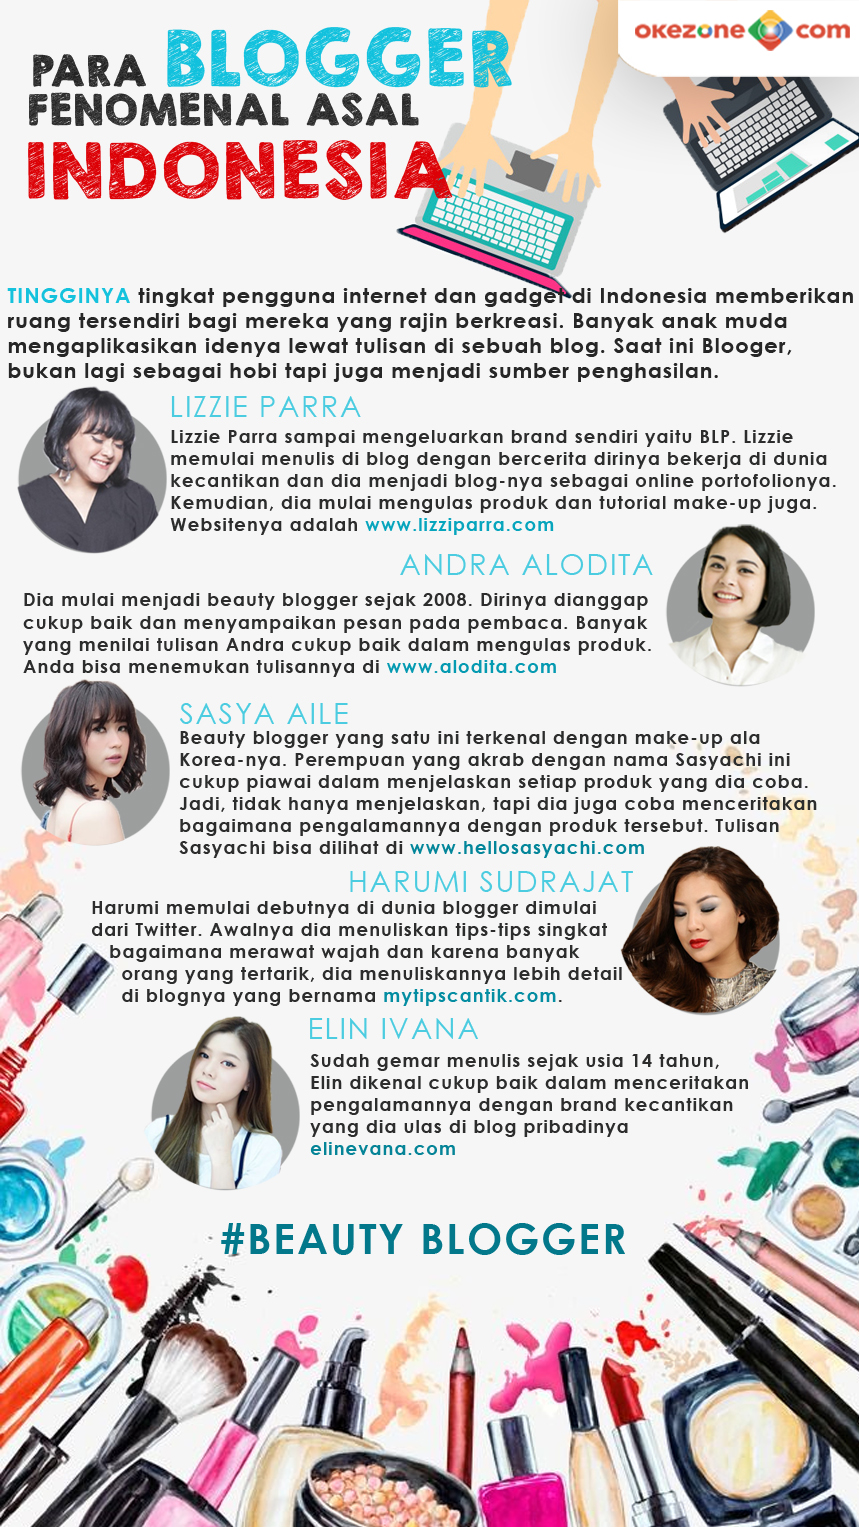 Para Blogger Fenomenal Asal Indonesia BEAUTY BLOGGER -